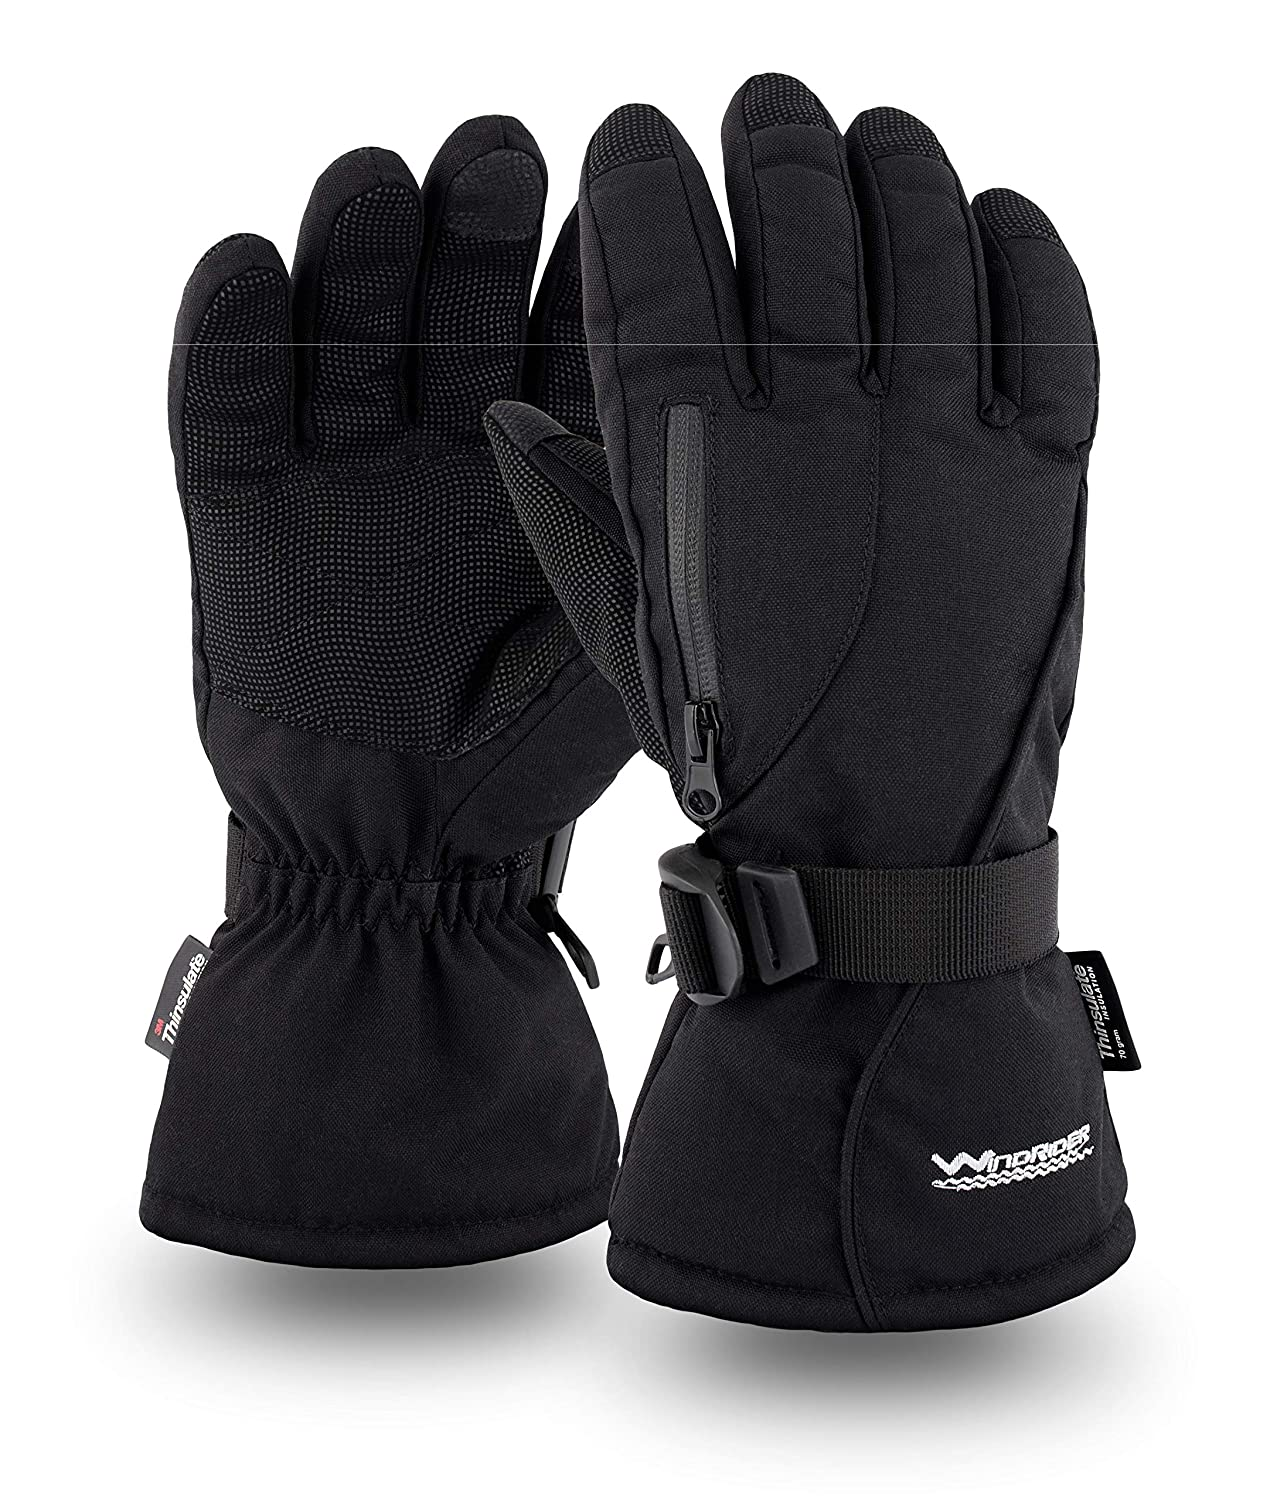 Image result for Rugged Waterproof Winter Gloves